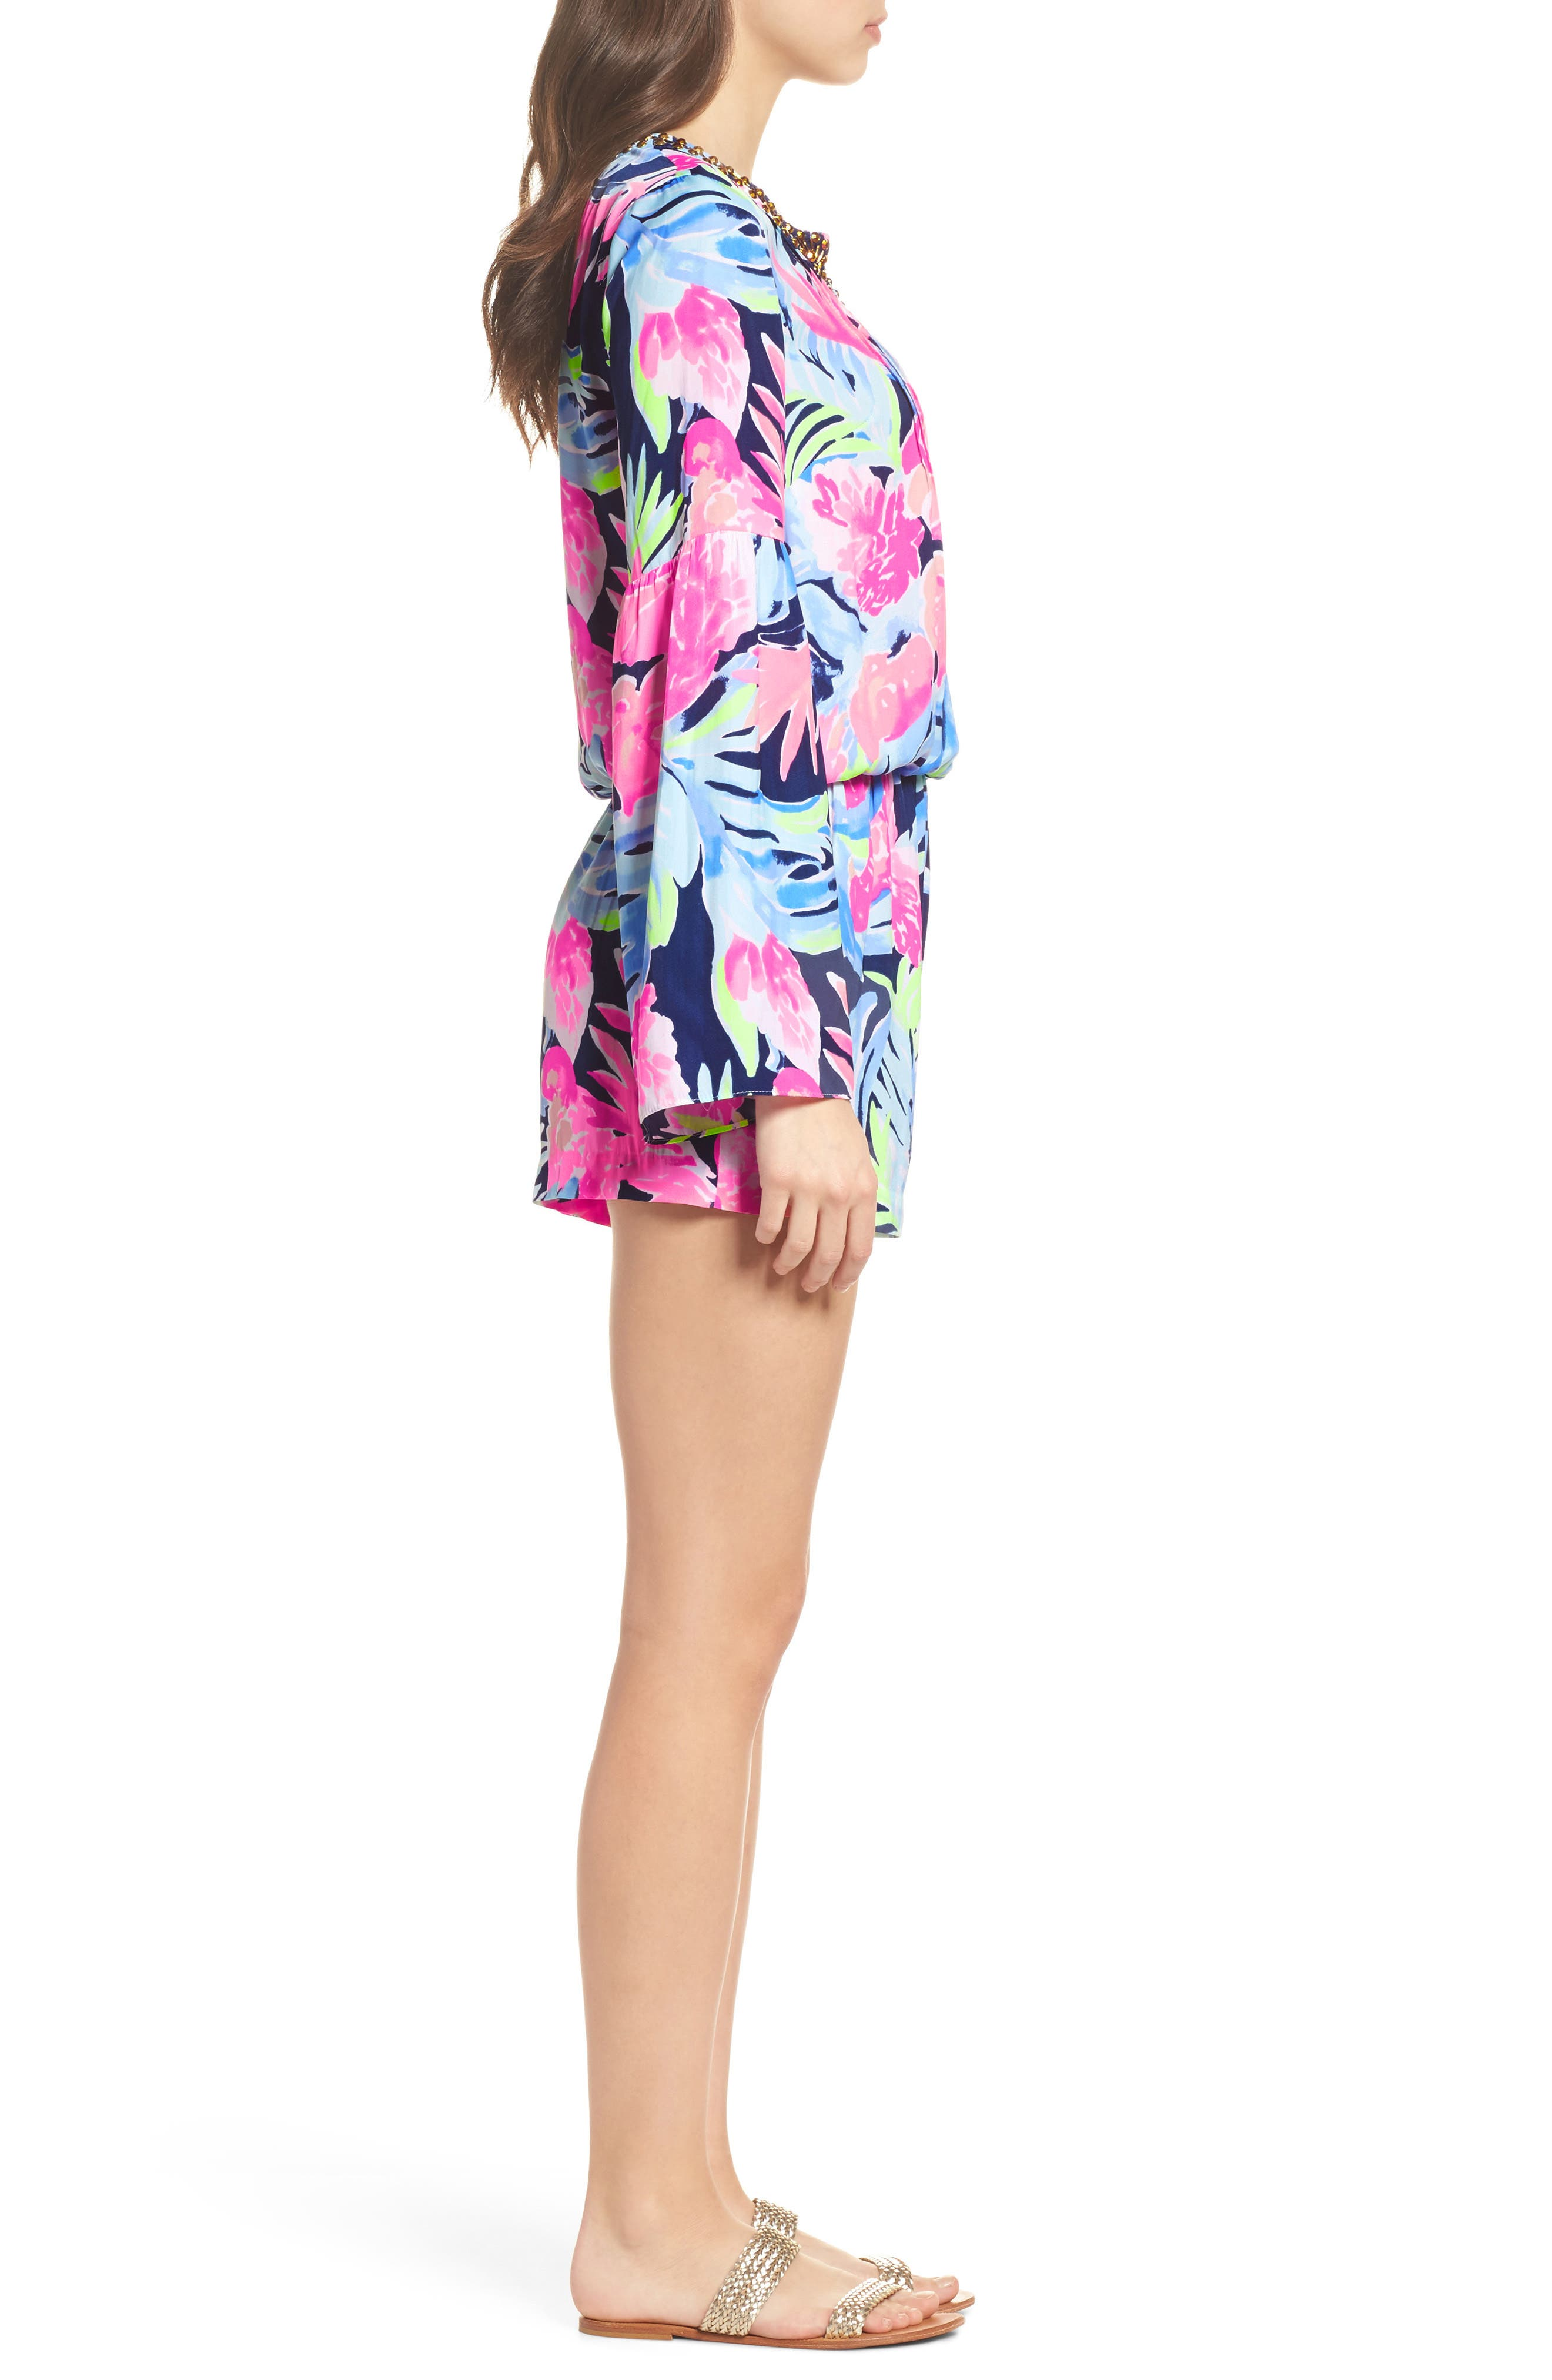 Ariele Floral Romper,                             Alternate thumbnail 3, color,                             High Tide Tropicolada